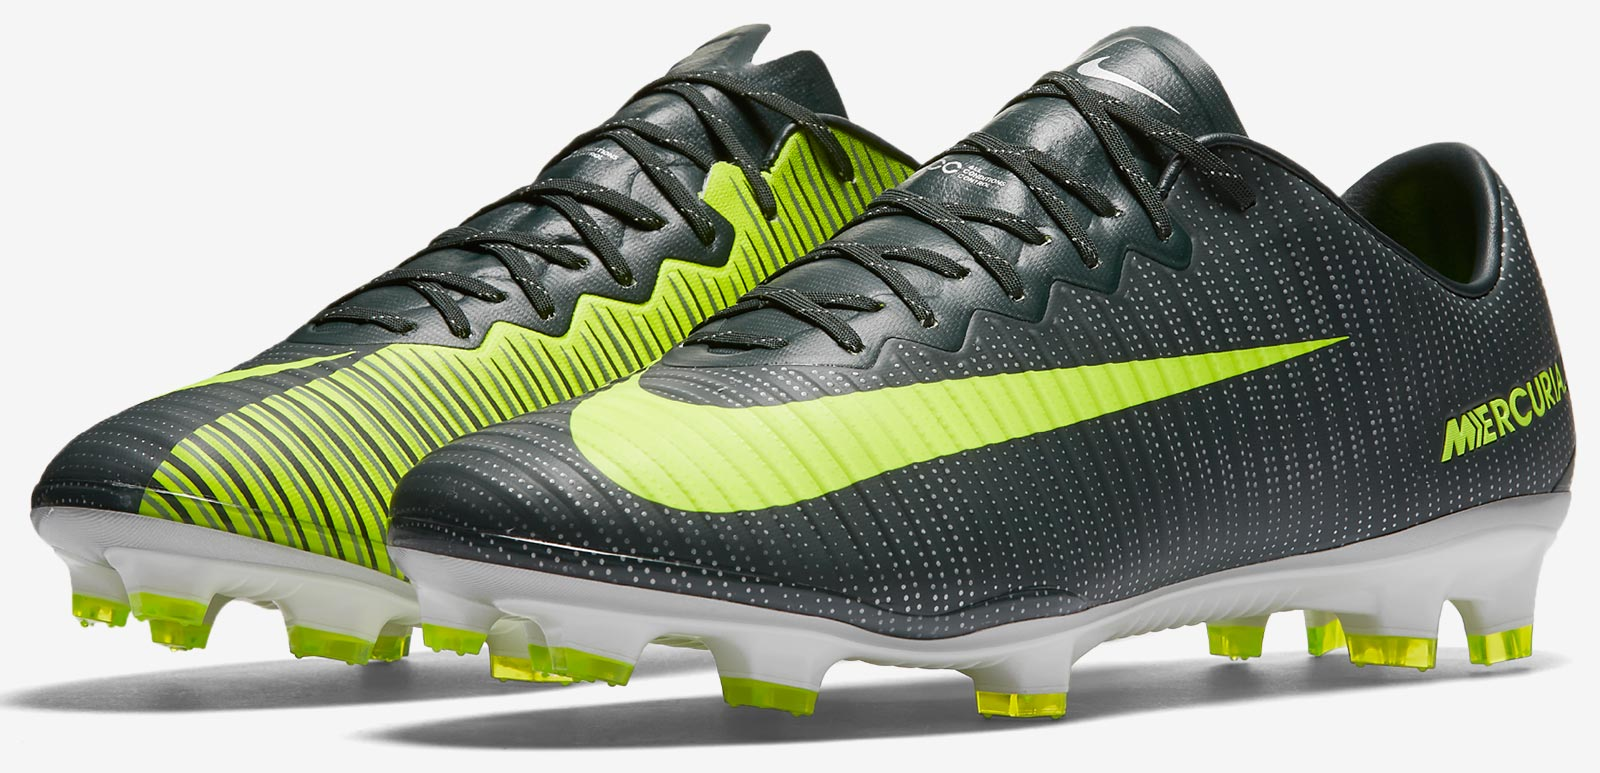 Color-Changing Nike Mercurial CR7 Chapter 3 Prototype ...